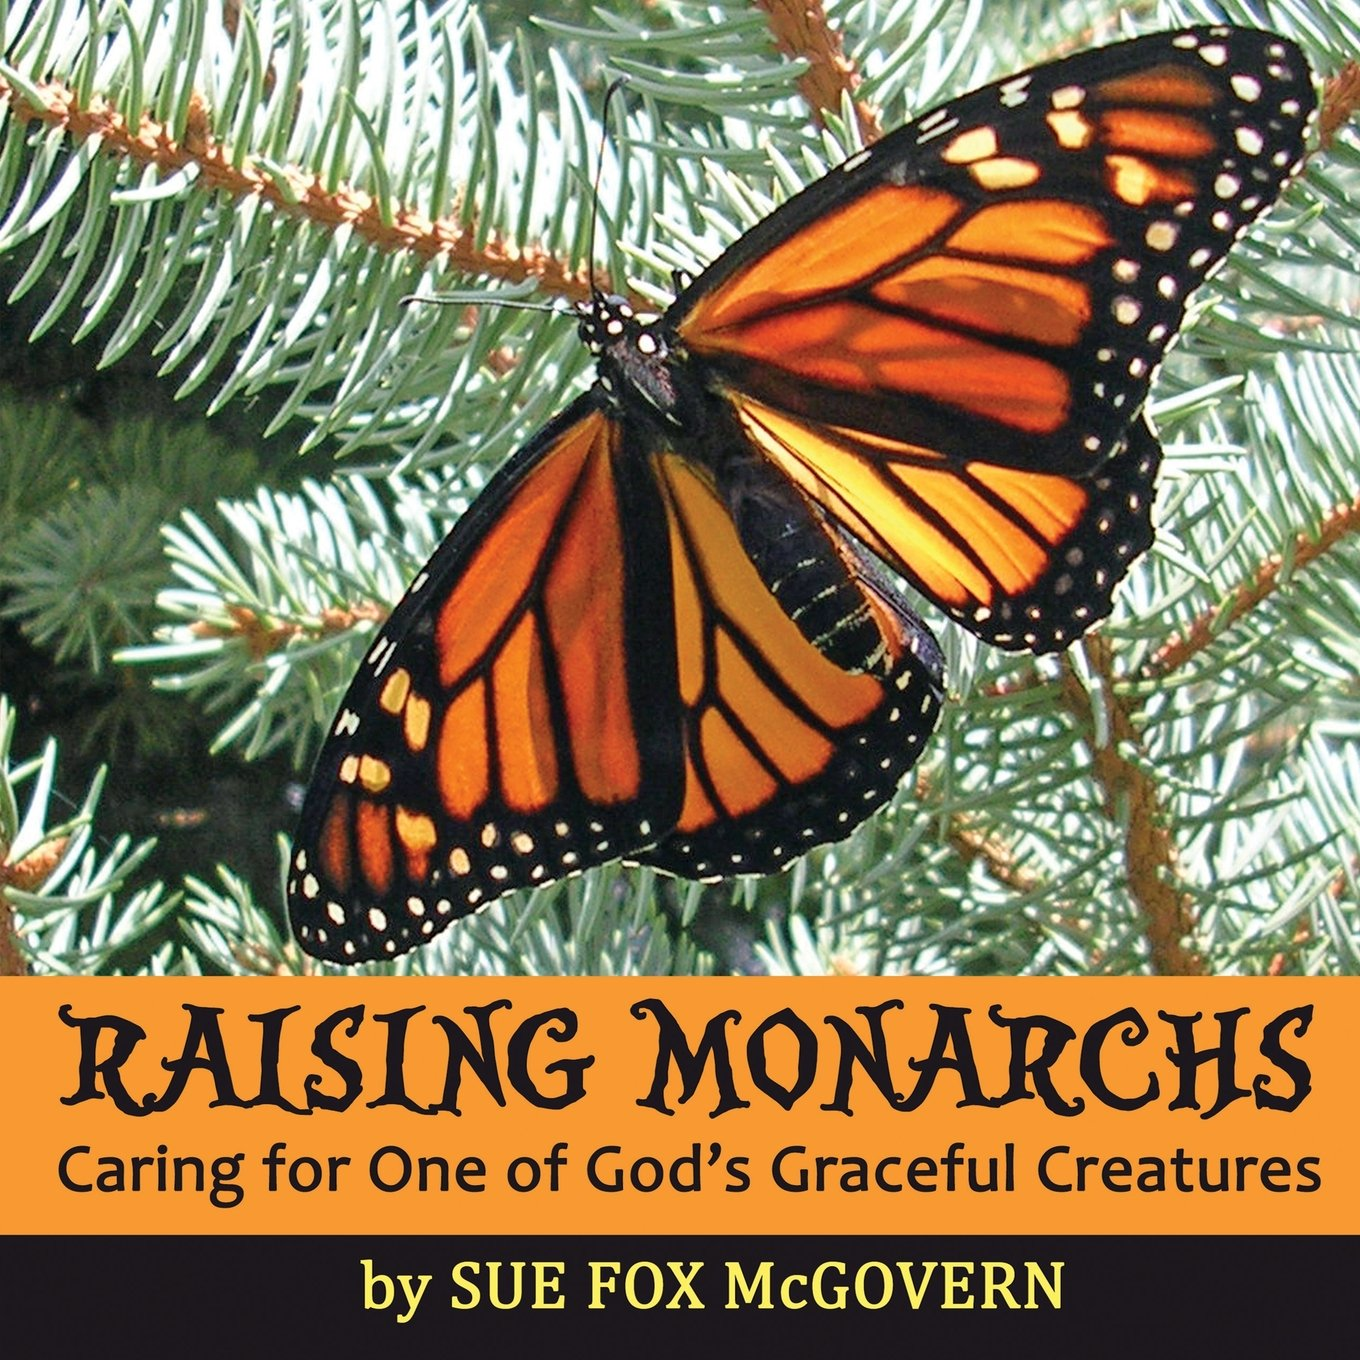 Raising Monarchs: Caring for One of God's Graceful Creatures pdf epub